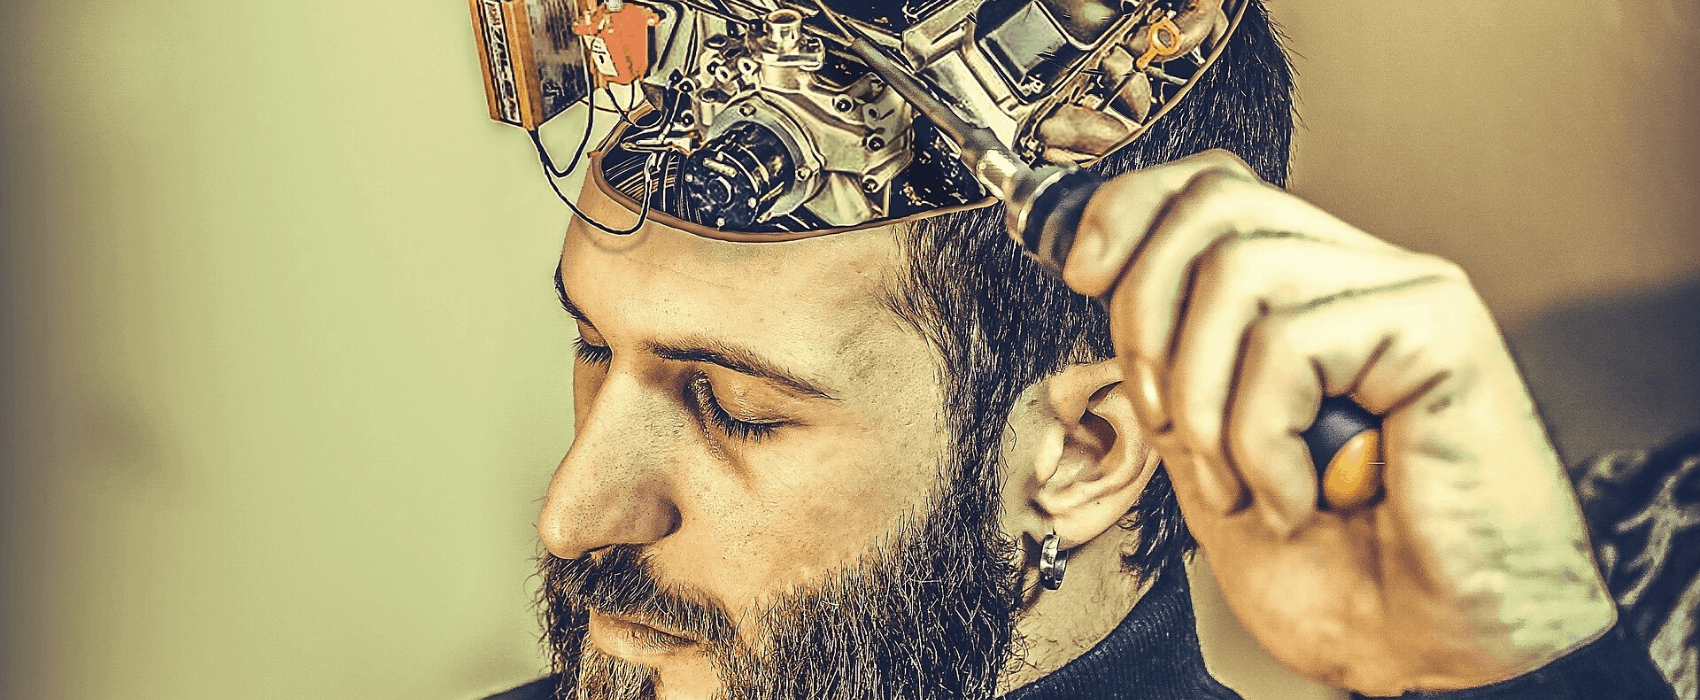 guy with open brain